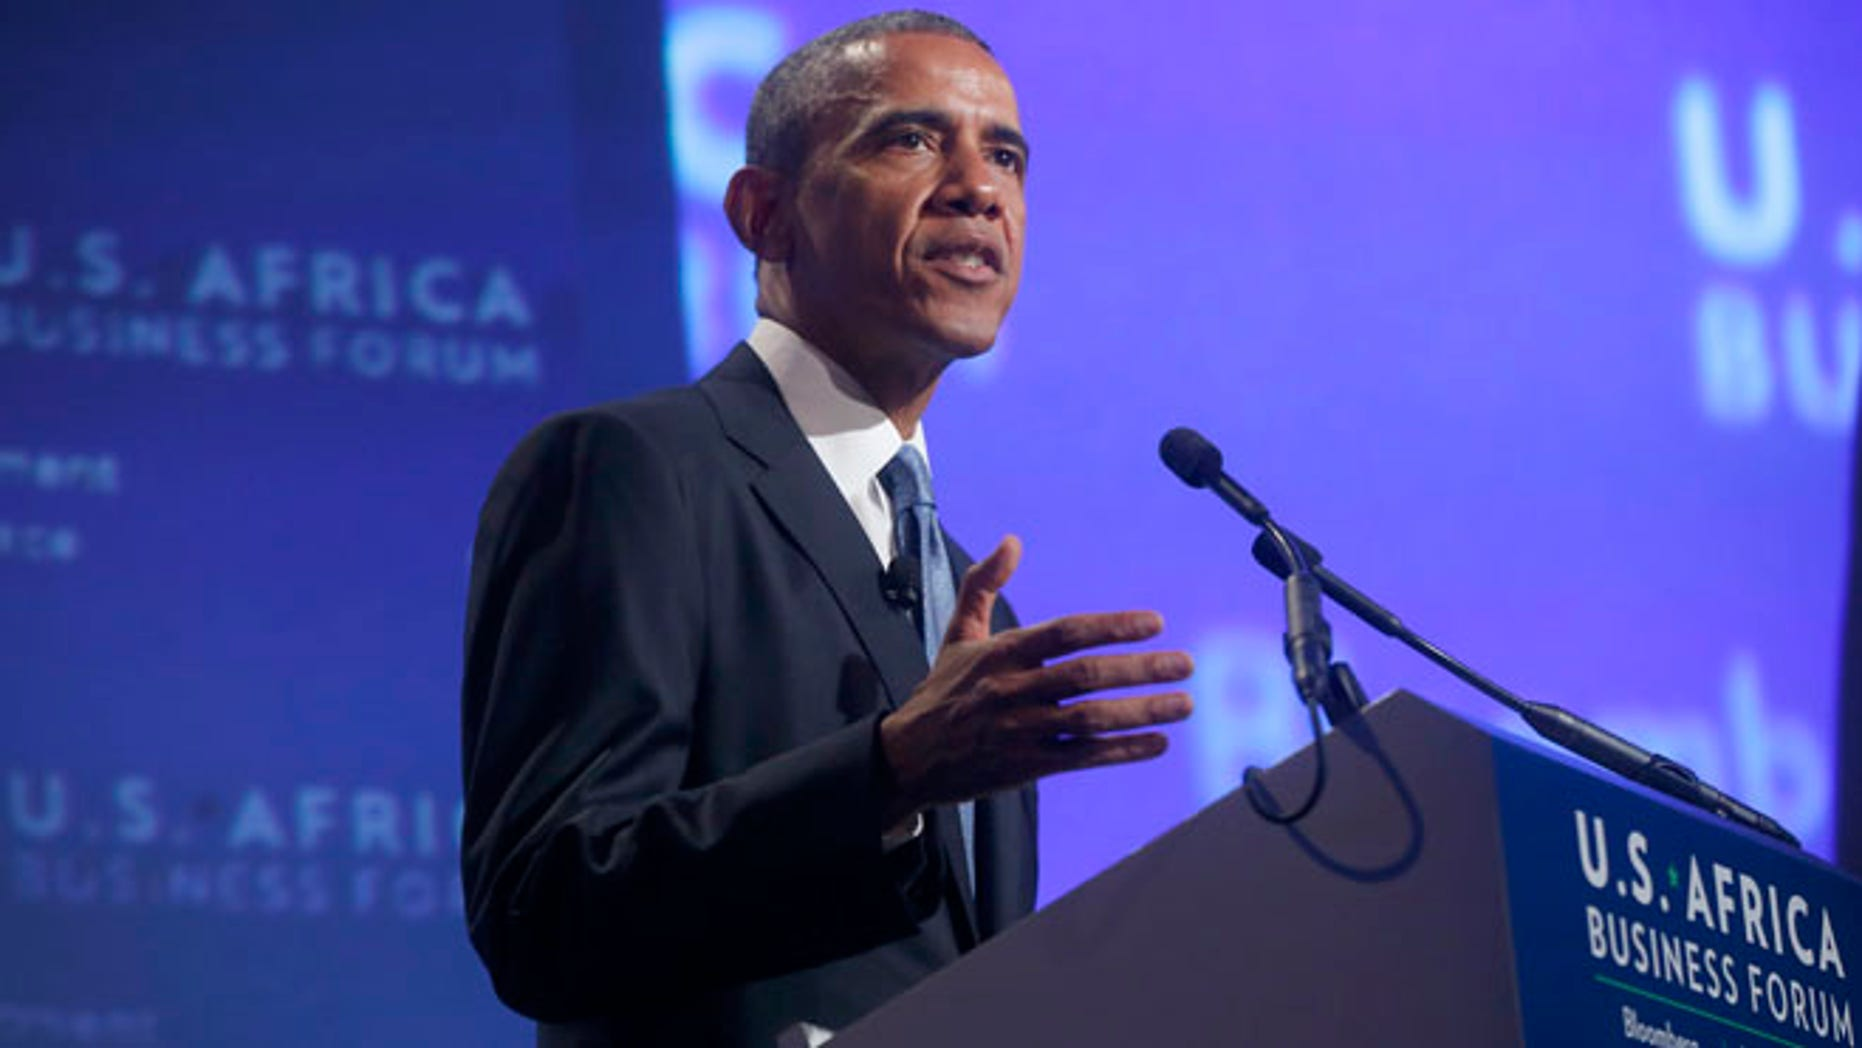 President Barack Obama speaks at the US Africa Business Forum during the US Africa Leaders Summit, Tuesday, Aug. 5, 2014, at the Mandarin Oriental Hotel in Washington.